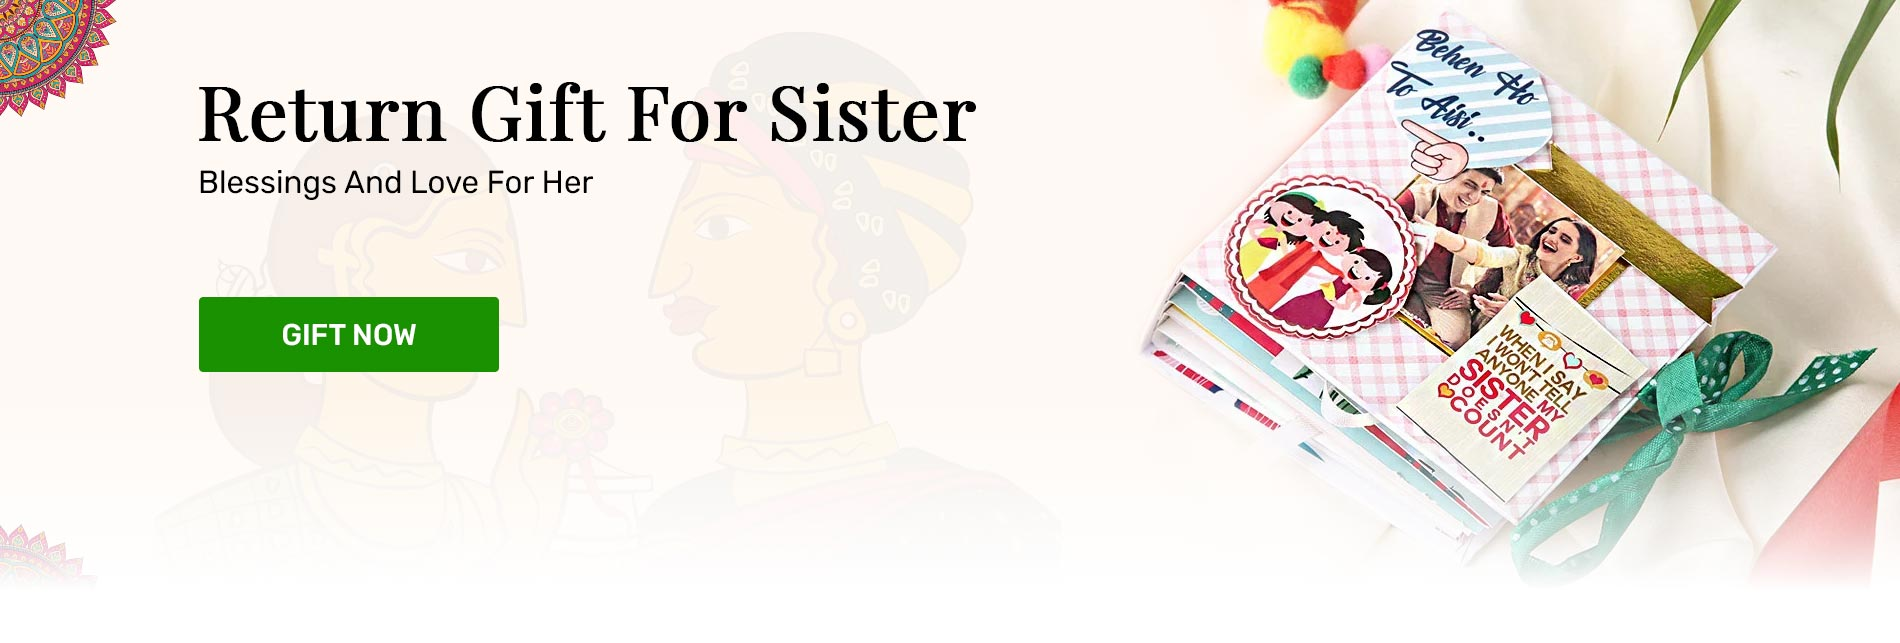 Return gift to sister in India